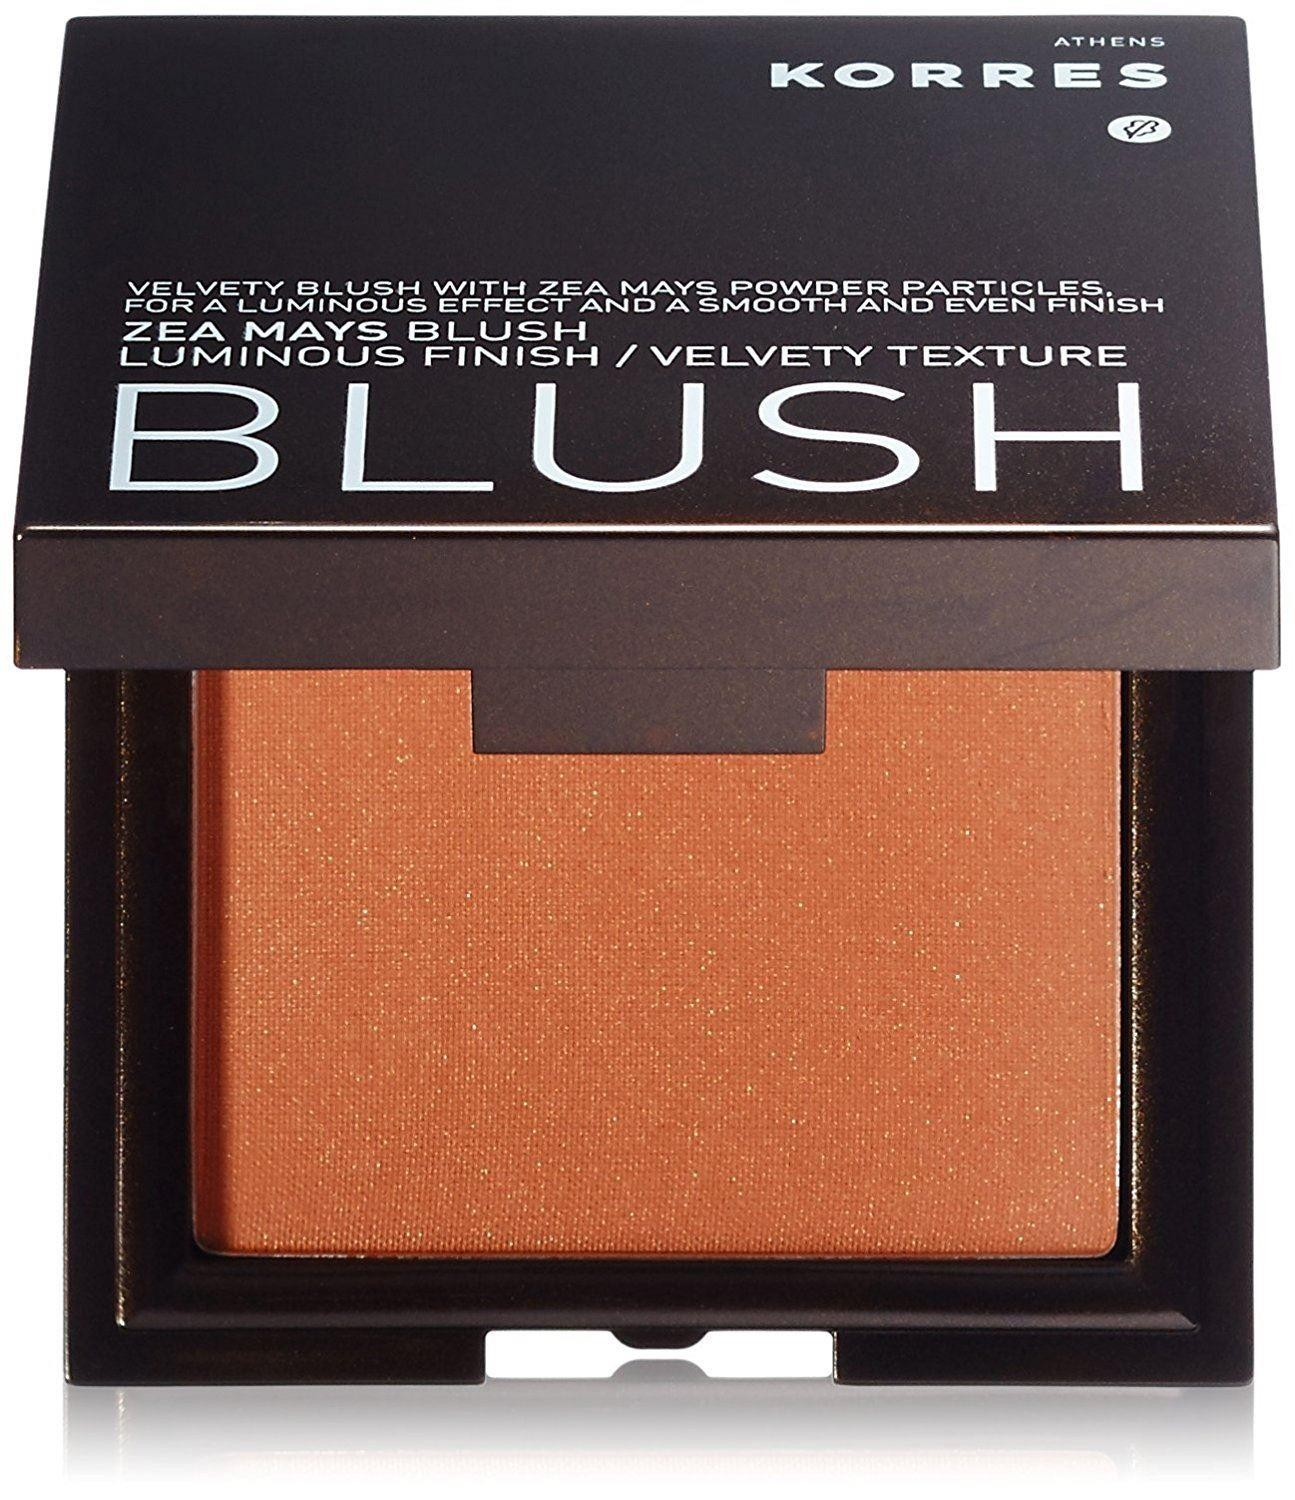 KORRES Colour Zea Mays Velvety Texture Blush in Apricot 42